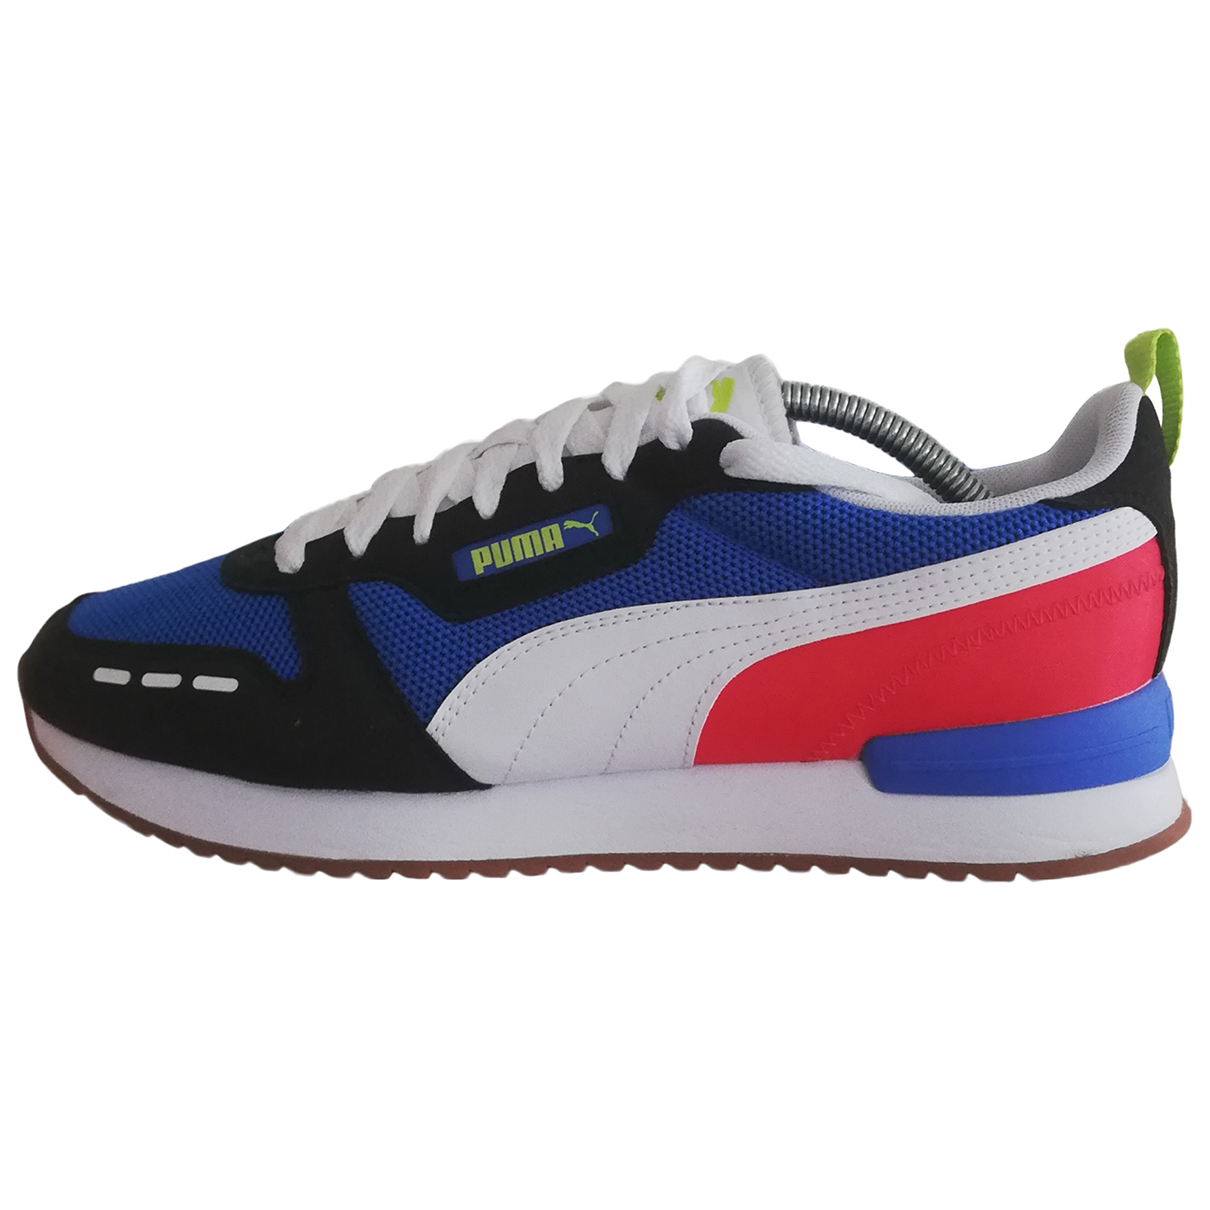 Puma N Multicolour Trainers for Men 44 EU